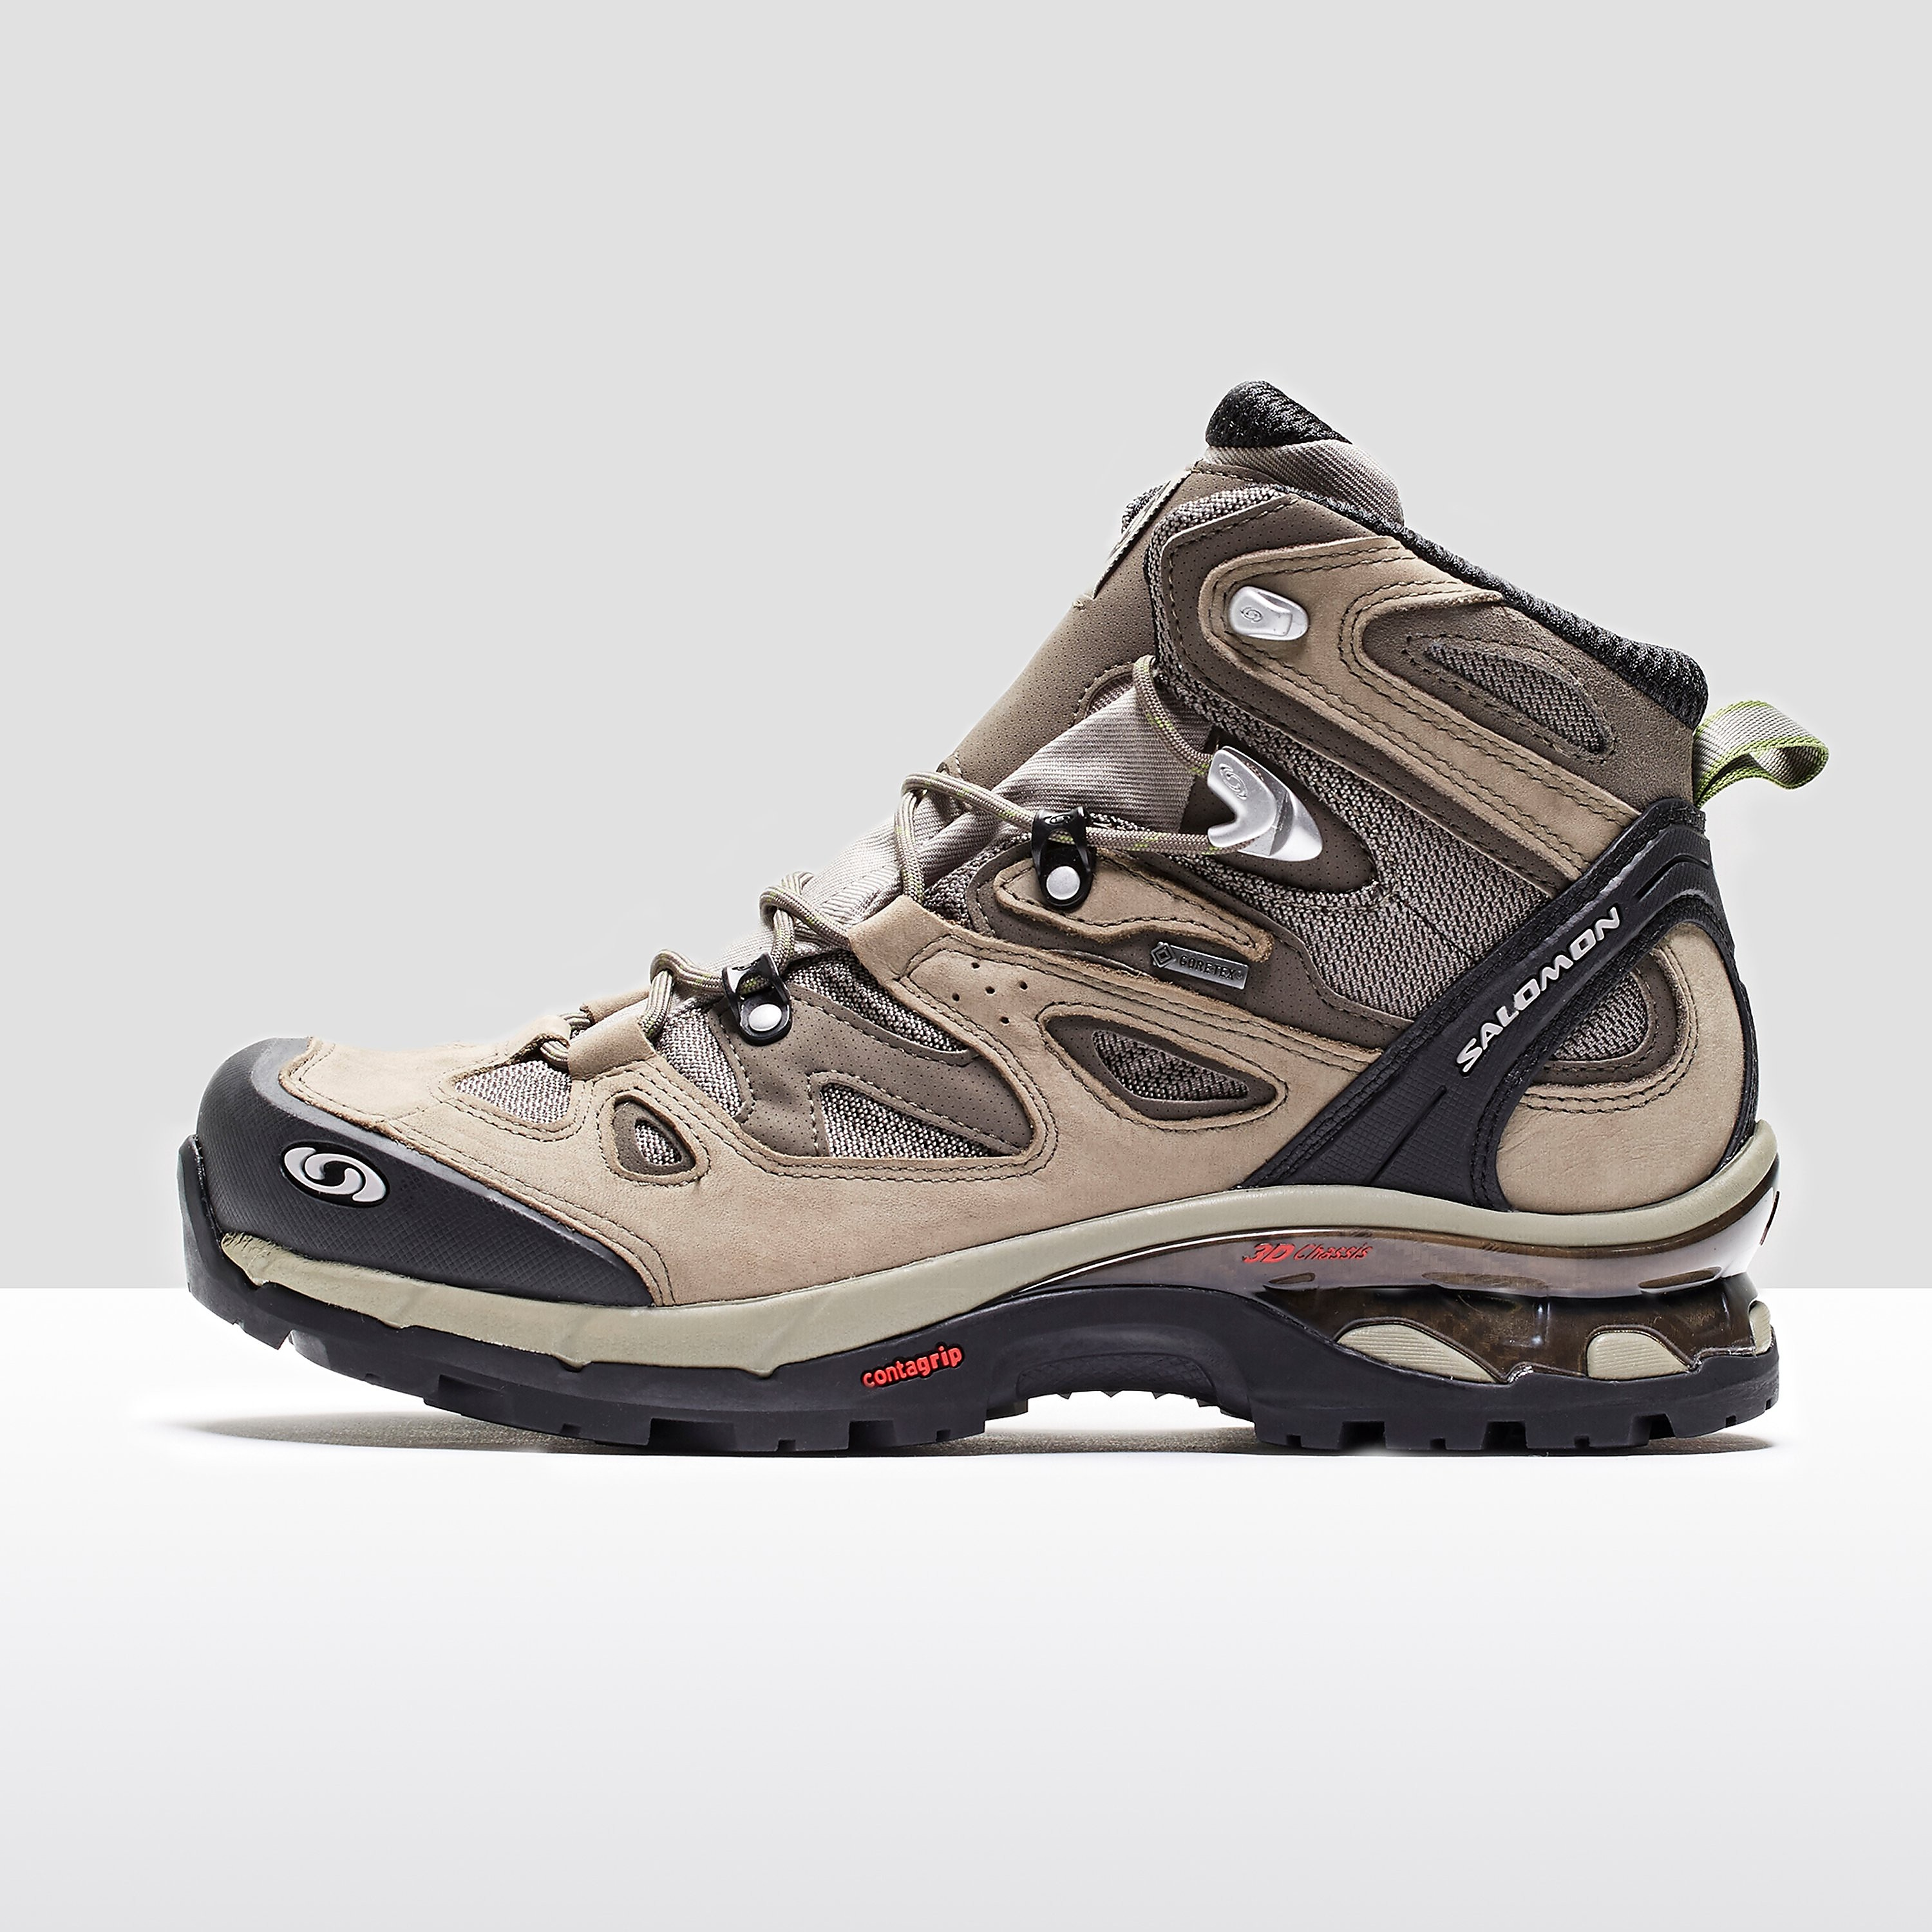 Salomon Comet 3D GTX Men's Walking and Hiking Boots